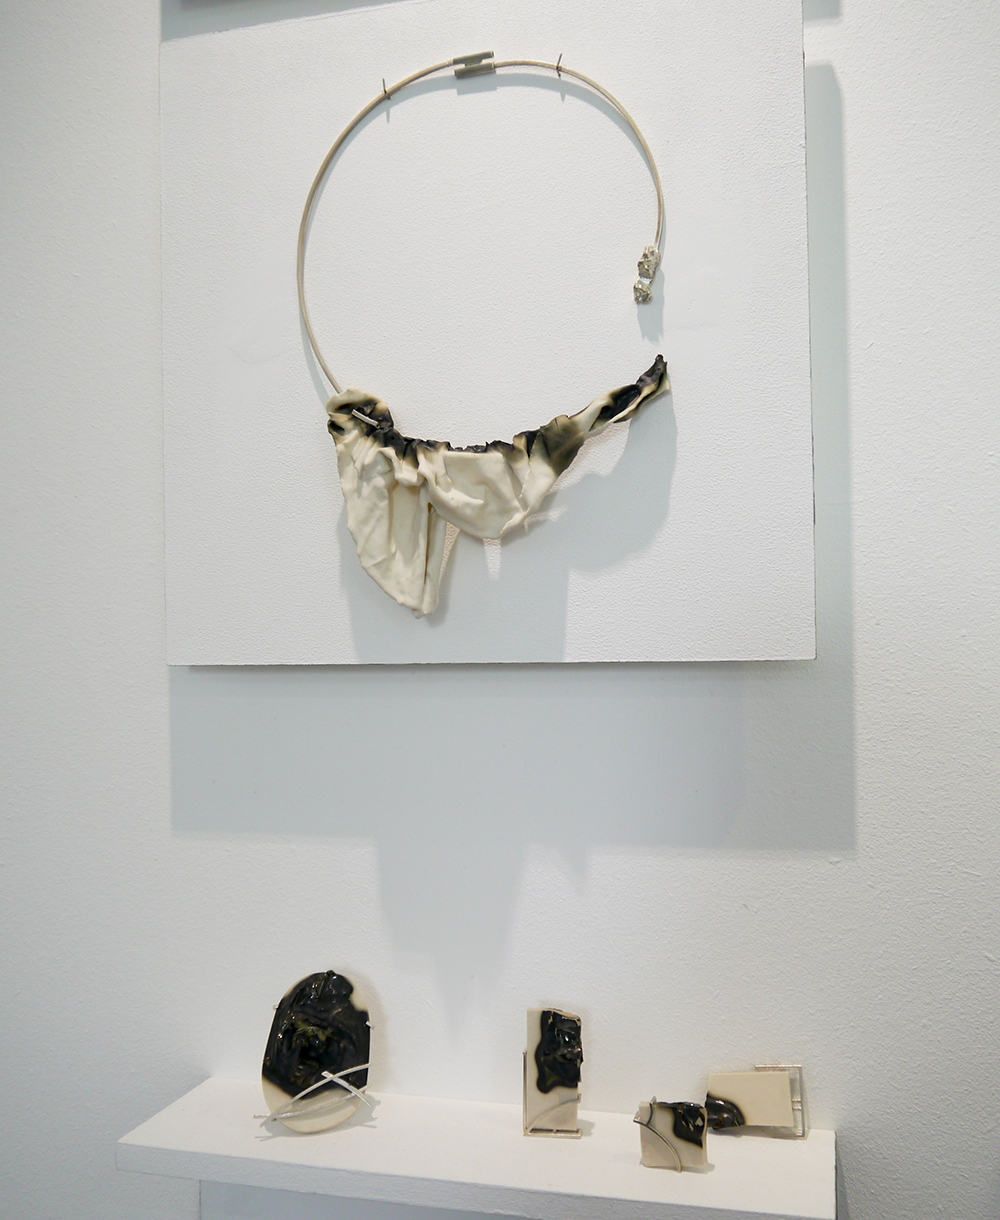 Duncan of Jordanstone College of Art and DEsign, DJCAD, degree show, #djcaddegreeshow, #djcaddegreeshow15, Degree Show 2015, Jewellery, jewellery and metal design, Sarah Marshall